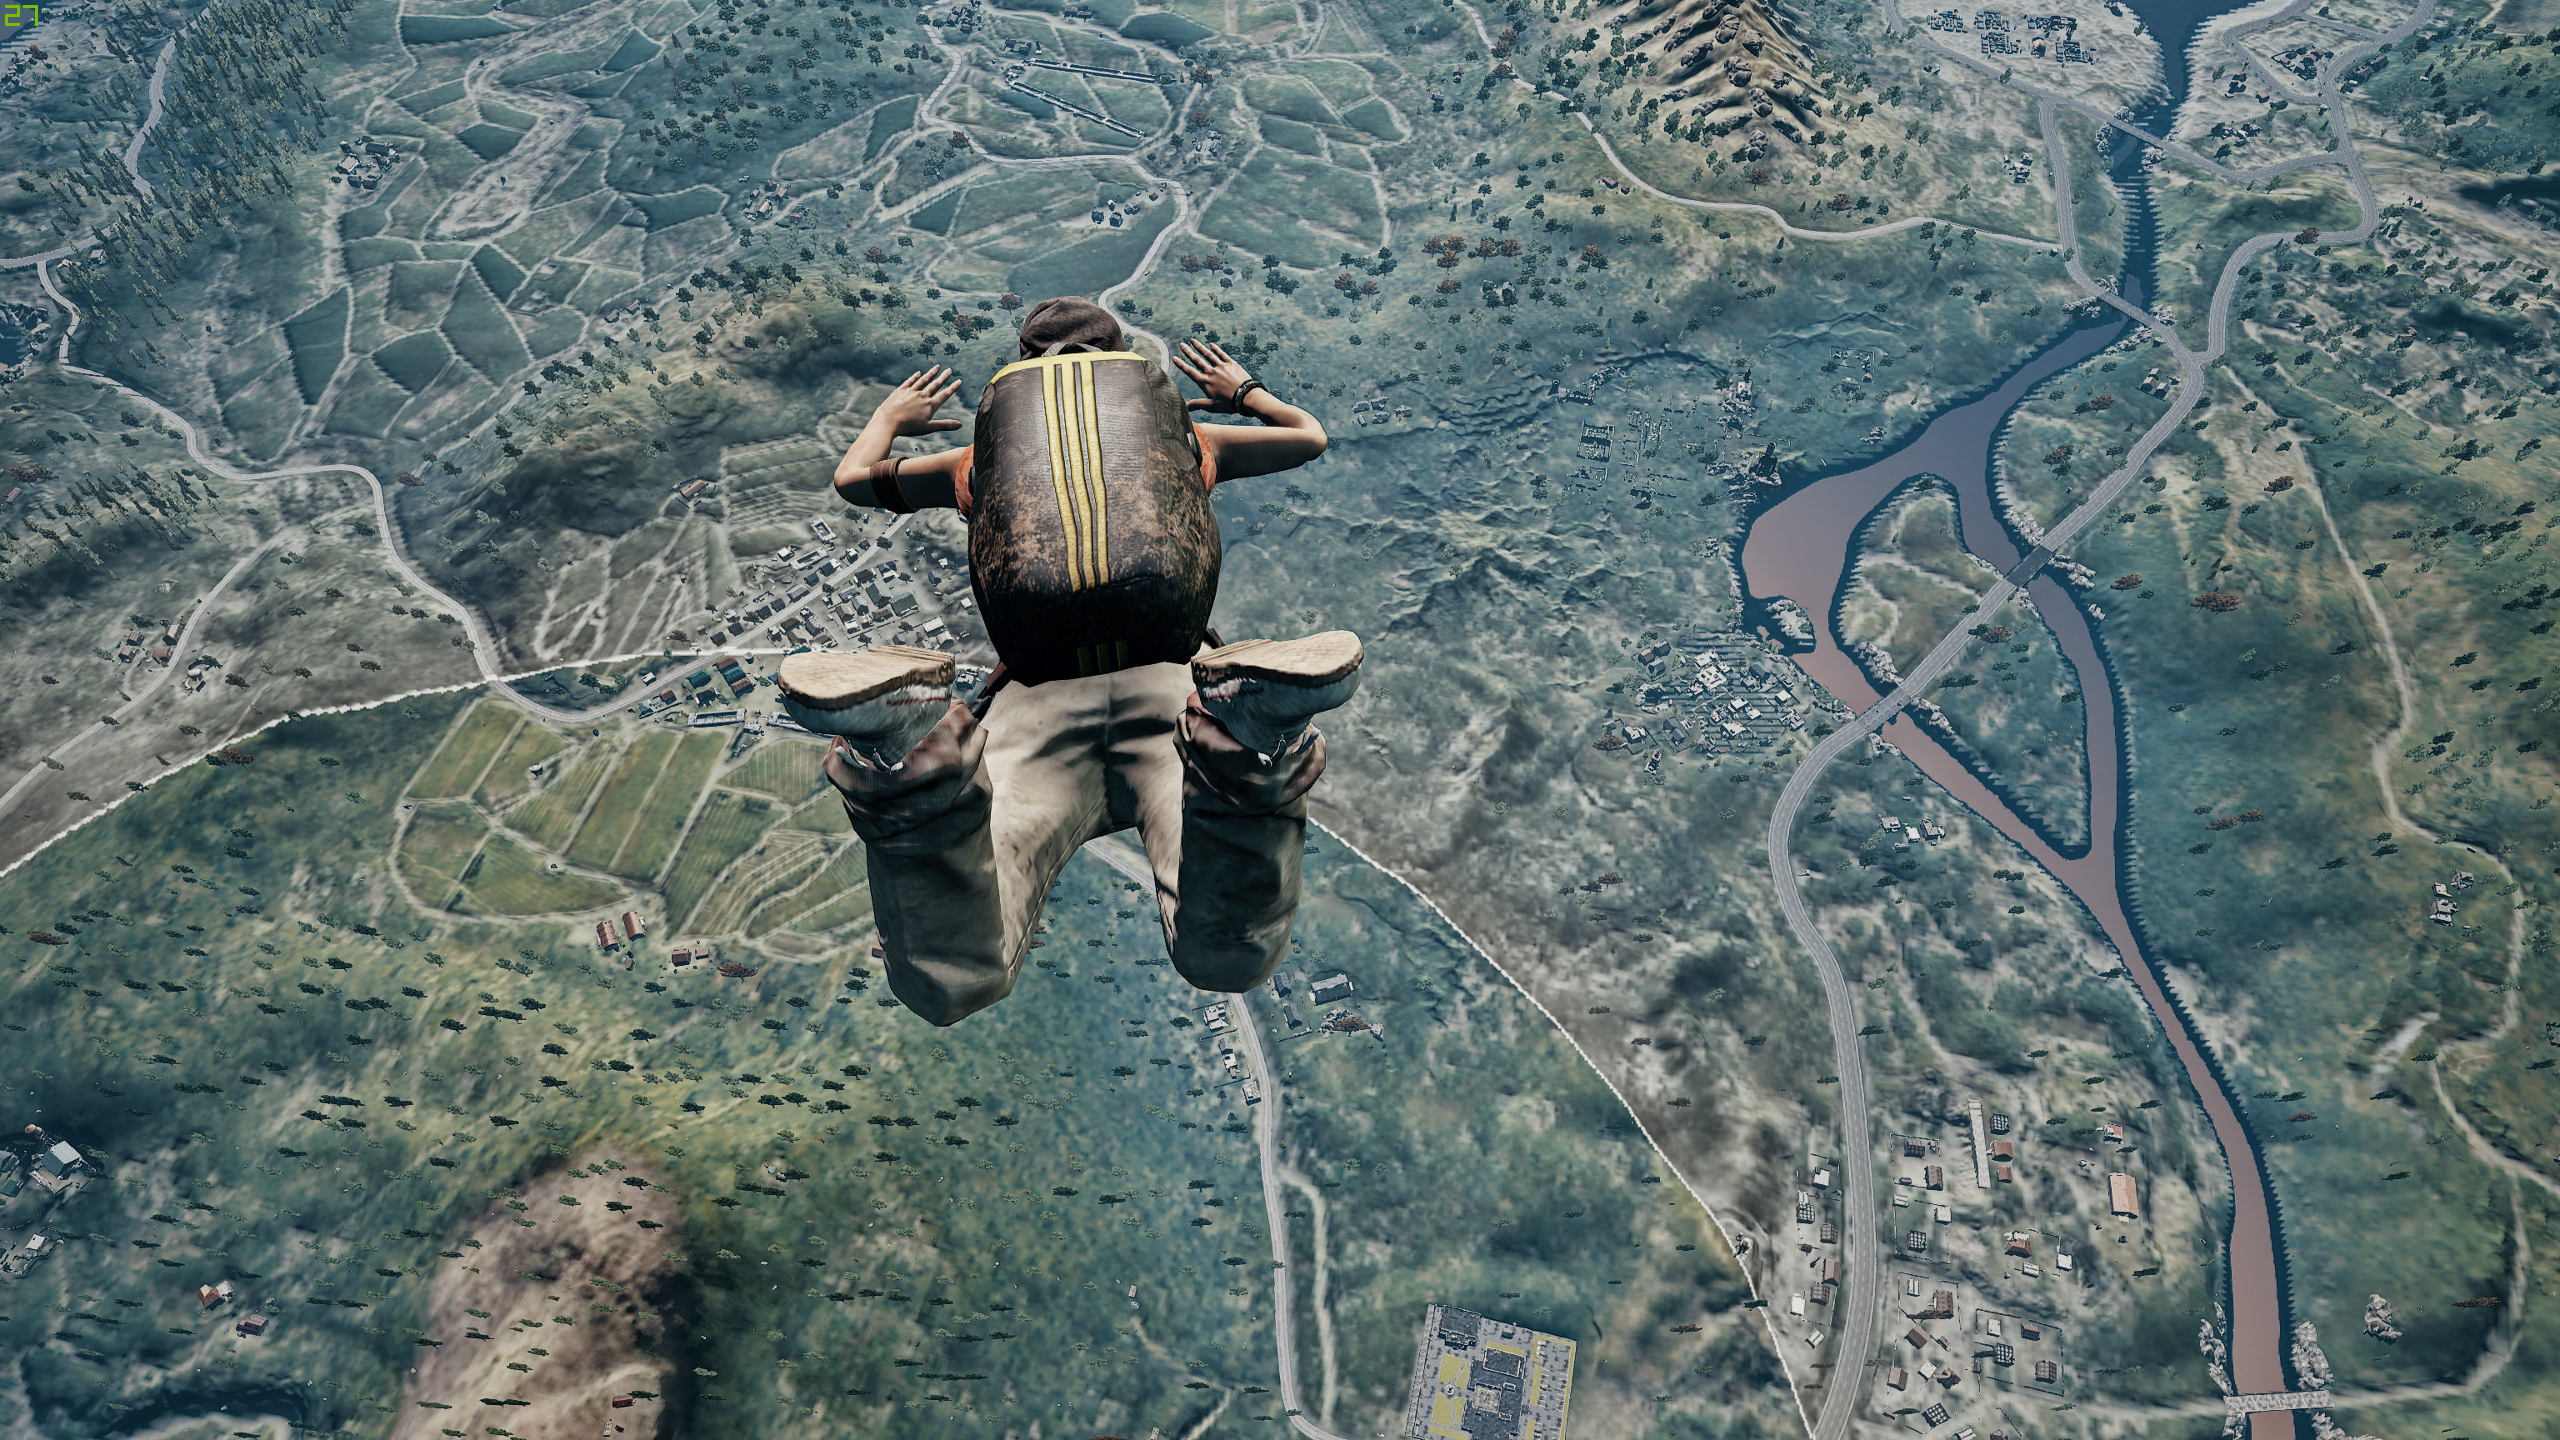 1920x1080 Pubg Artwork 4k Laptop Full Hd 1080p Hd 4k: 1920x1080 Pubg Jump From Plane 4k Laptop Full HD 1080P HD